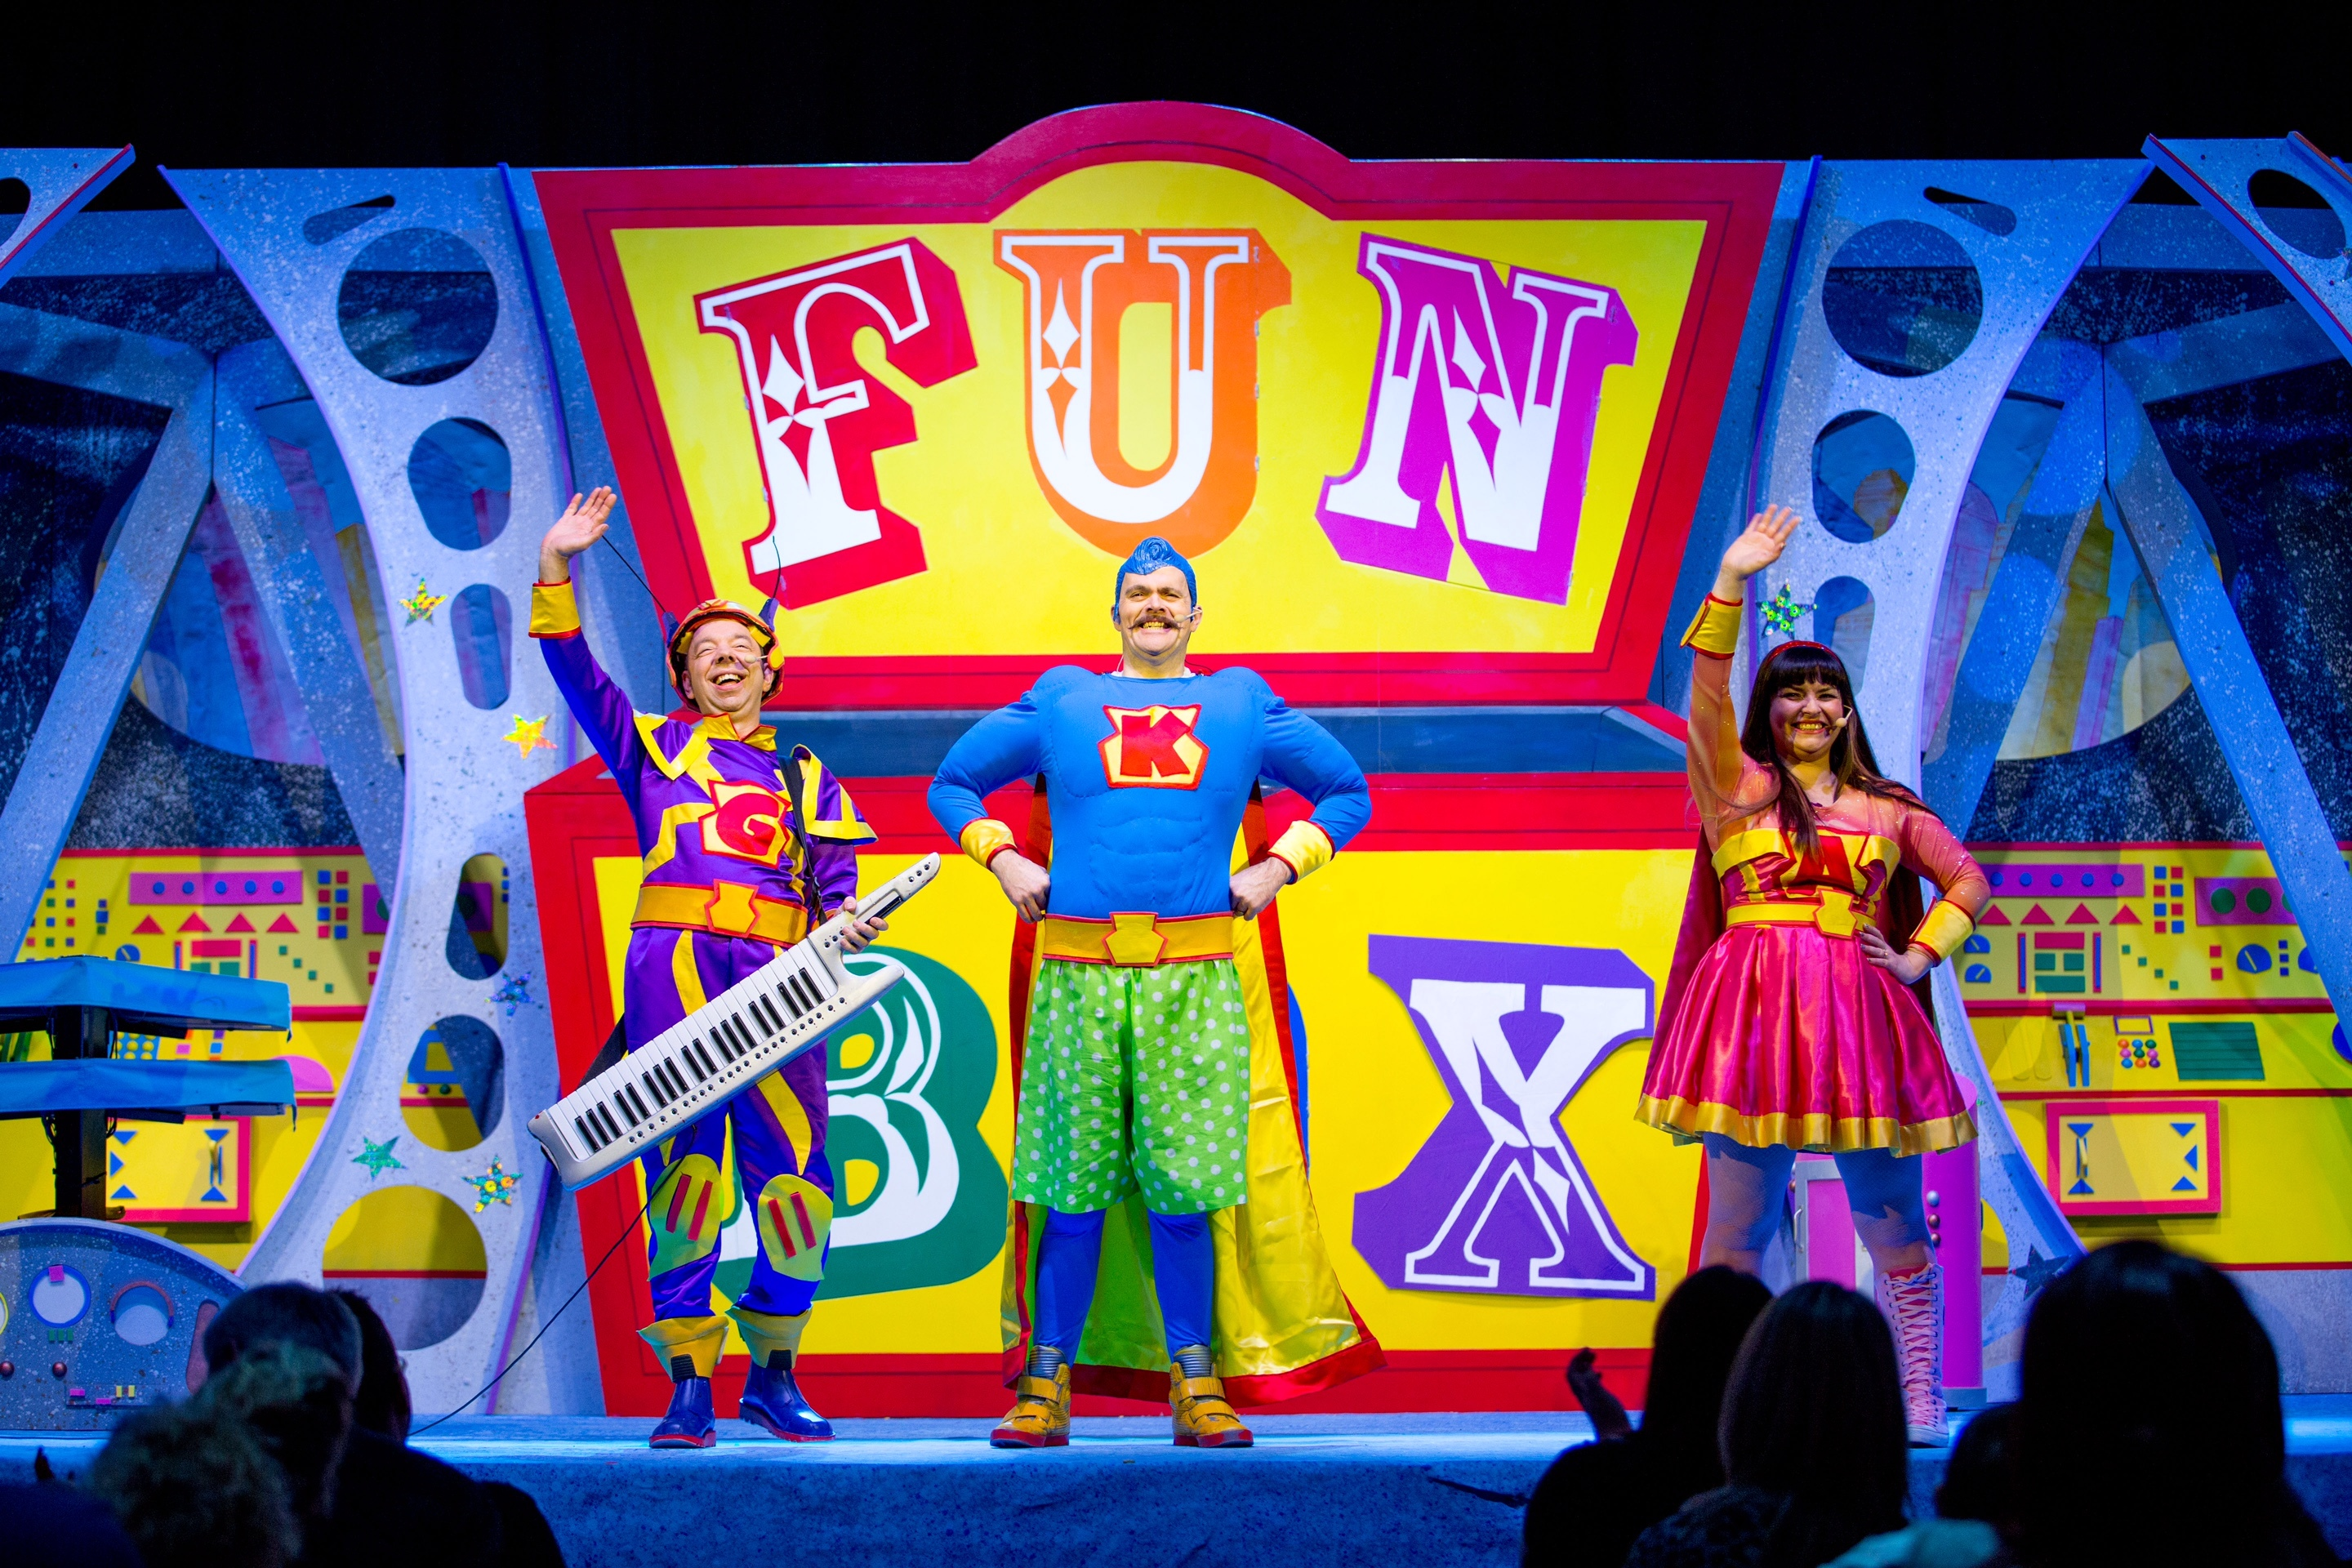 The FUNBOX - Super Heroes Show DVD recording at the SECC in Glasgow, 14th February 2016. Picture by John Young © www.youngmedia.co.uk 2016 ALL RIGHTS RESERVED